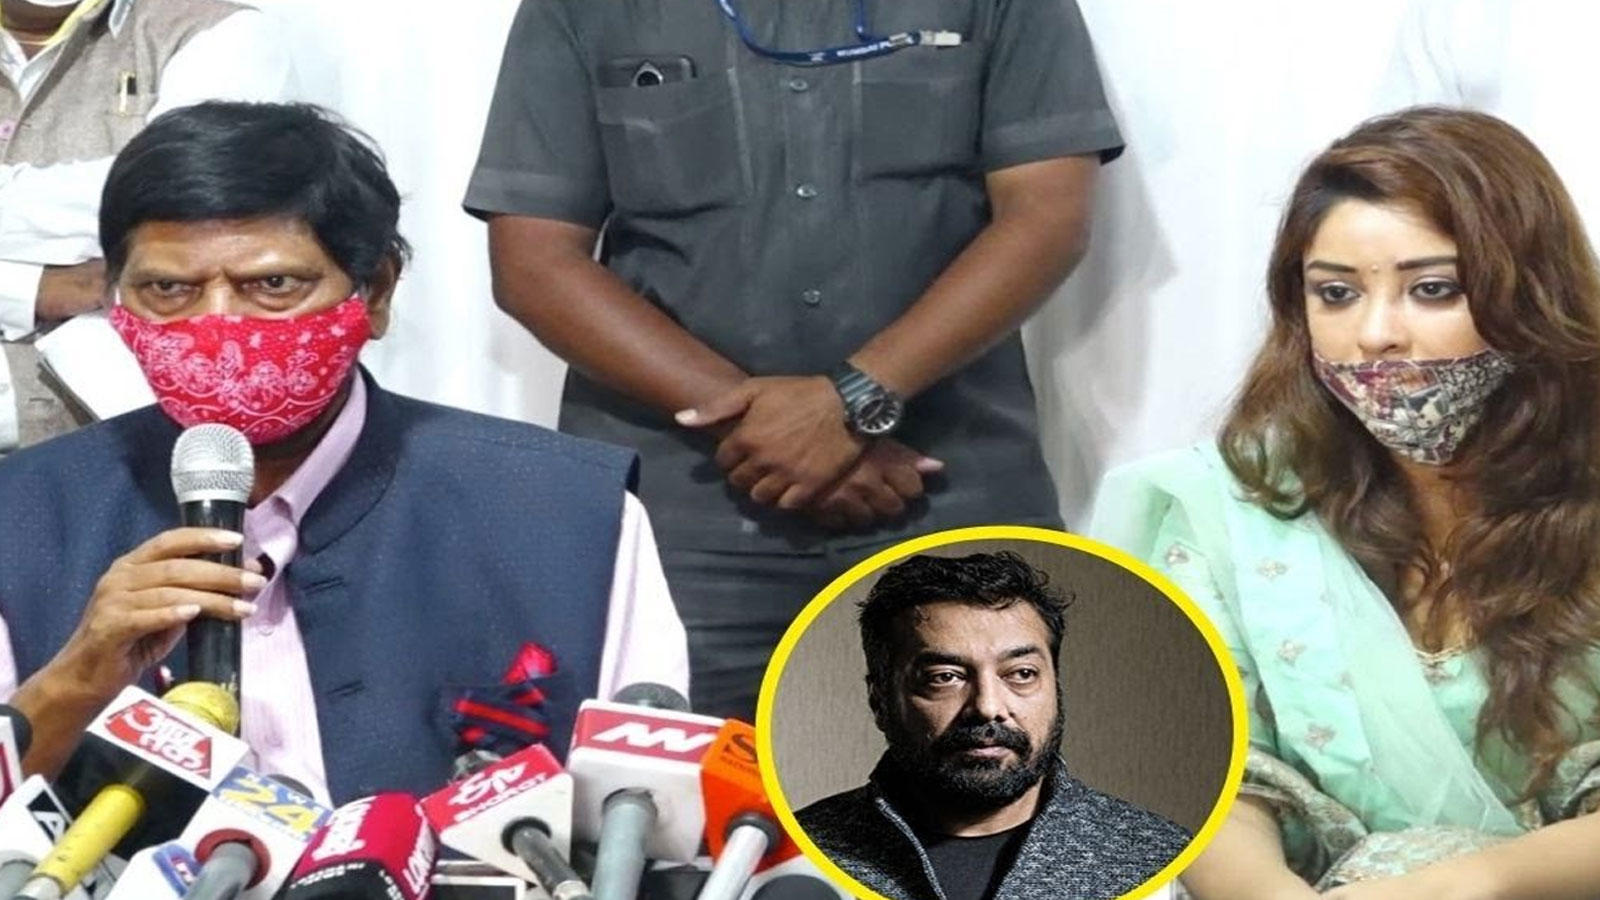 payal-ghoshs-fir-arrest-anurag-kashyap-in-7-day-or-will-start-protest-ramdas-athawale-warns-mumbai-police